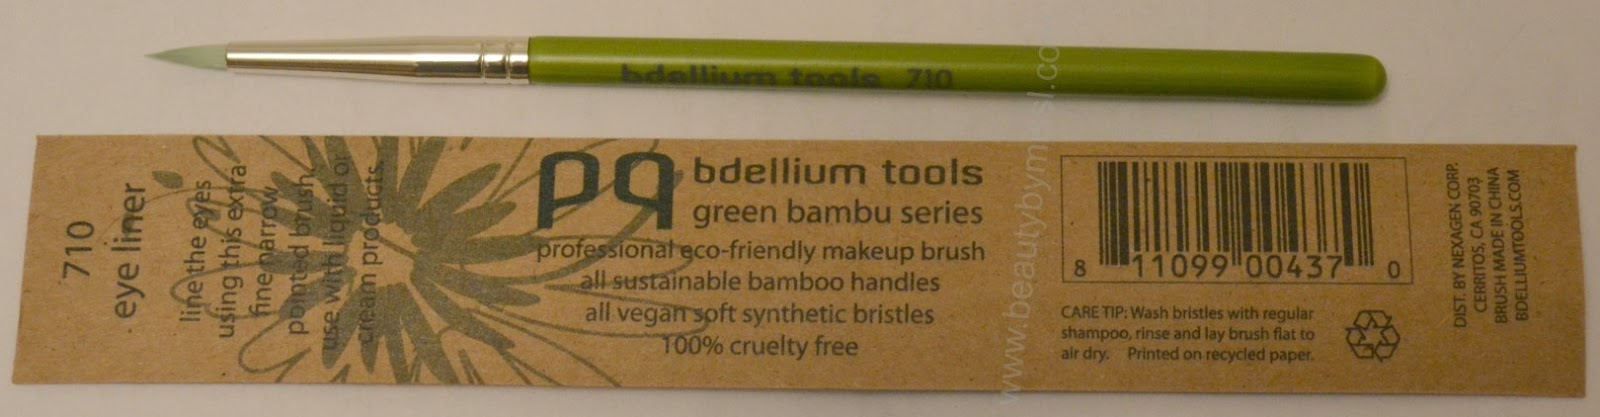 Bdellium Tools Green Bambu Series 710 Eye Liner brush review